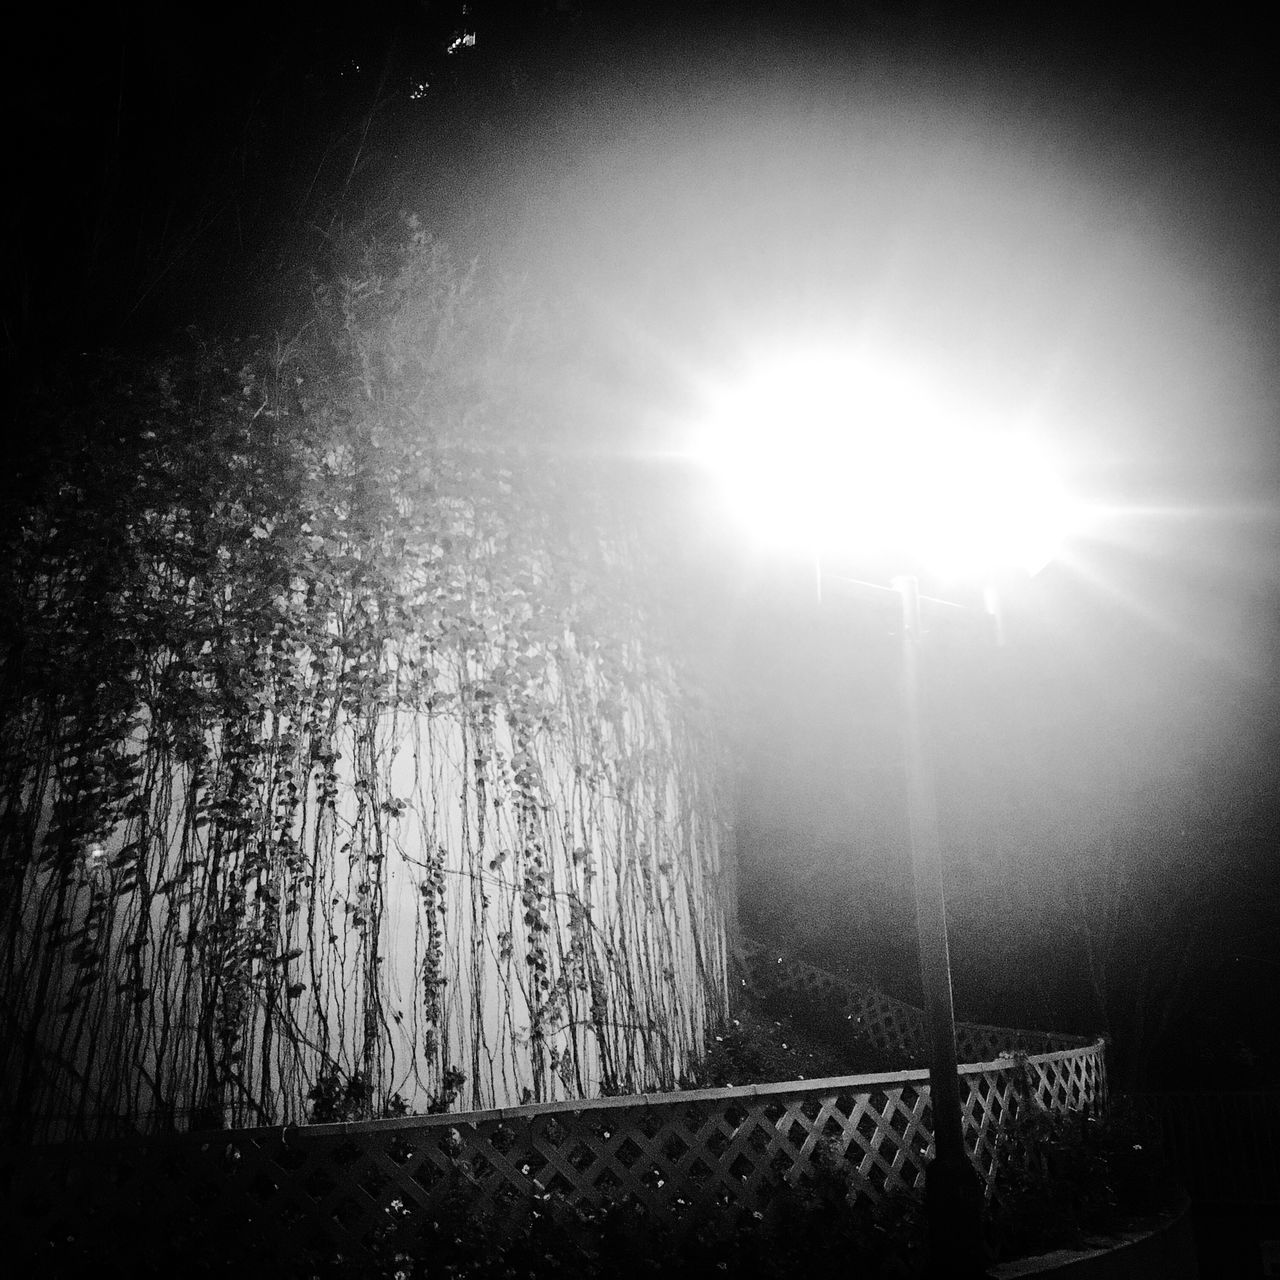 Streetphotography Streetphoto_bw Nightphotography Night Lights Light Pole Flare Flarelight Plant Wall Nature Art Lens Flare Beauty In Nature Tranquility Scenics Tranquil Scene Outdoors No People Silence Blackandwhite Monochrome Fence Low Key Photography